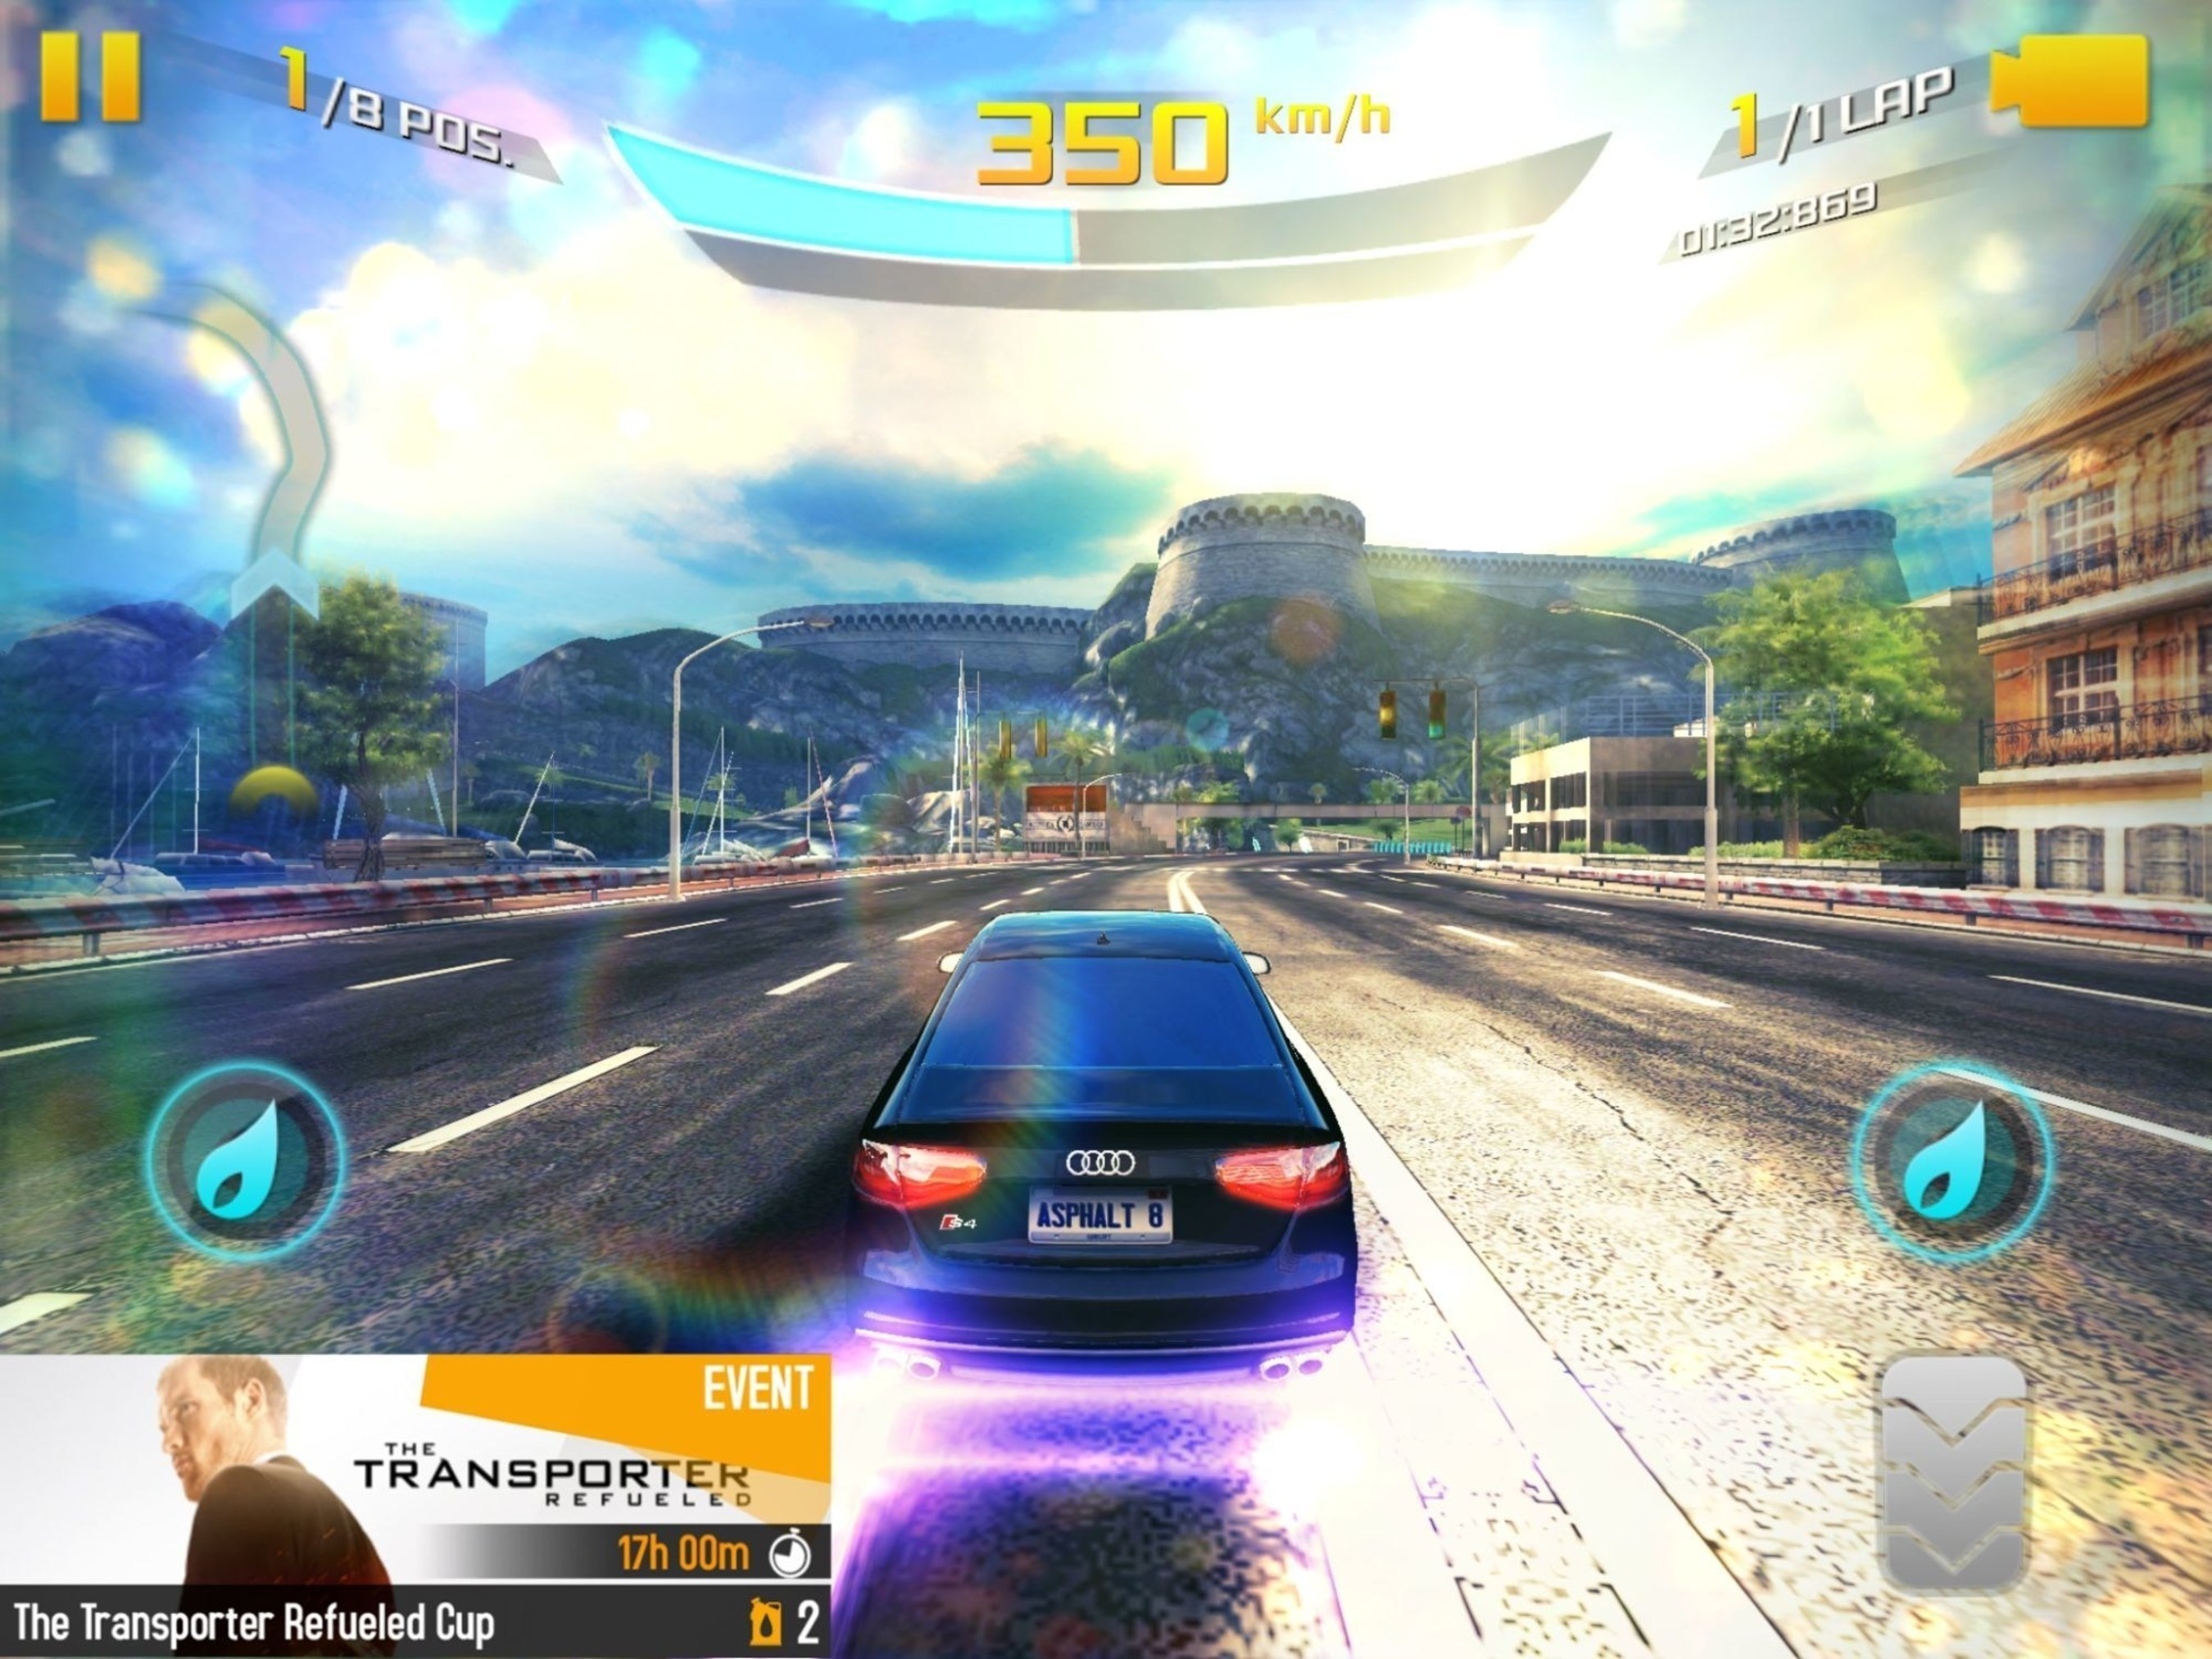 EuropaCorp Promotes The Transporter Refueled With Native Ads in Gameloft's Asphalt 8: Airborne Mobile Game